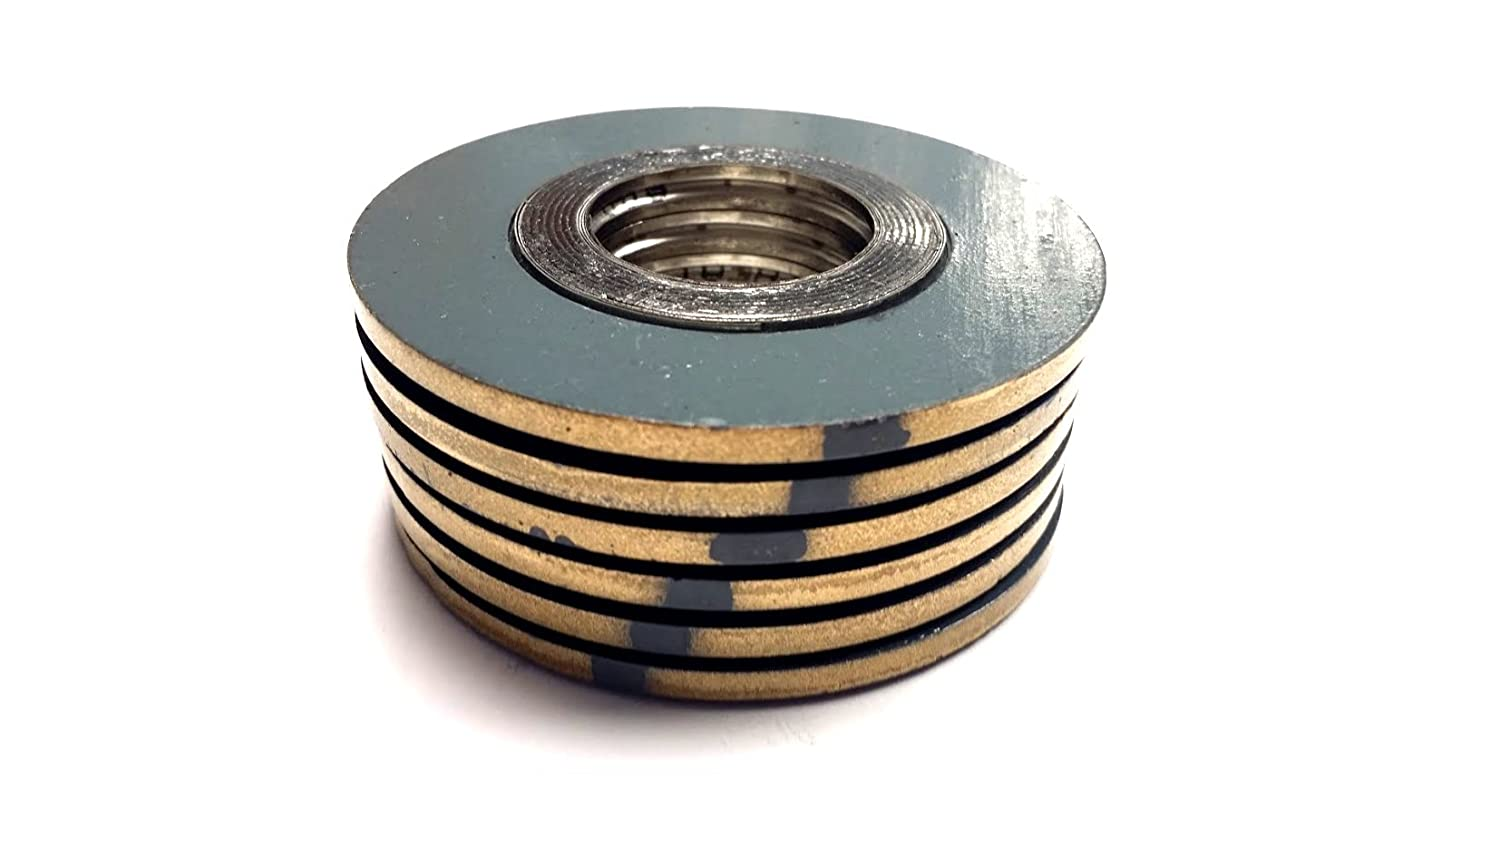 Sur-Seal 2-1//2 Pipe Size Inc #900 Class Flange for Applications with High Temperature Variations Thermal Cycling 2-1//2 Pipe Size Assigned by Sur-Seal Inconel 600 Flexible Graphite Teadit 90002500600GR900 Spiral Wound Gasket